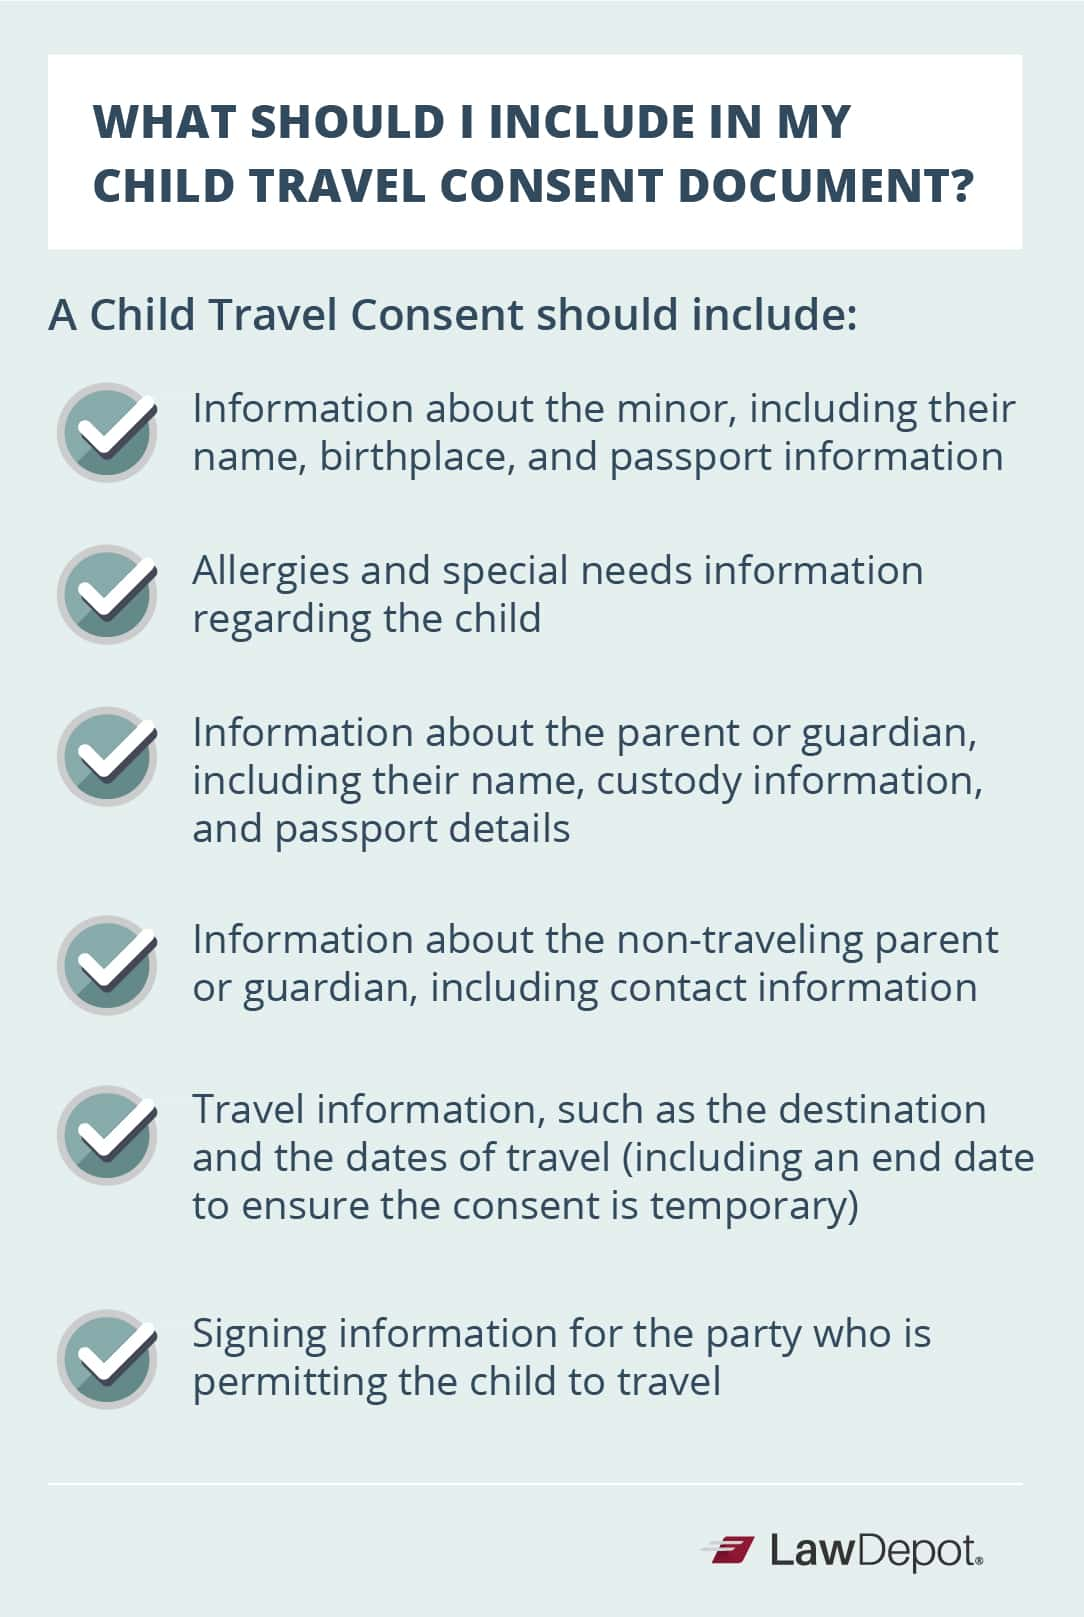 A Child Travel Consent should include: